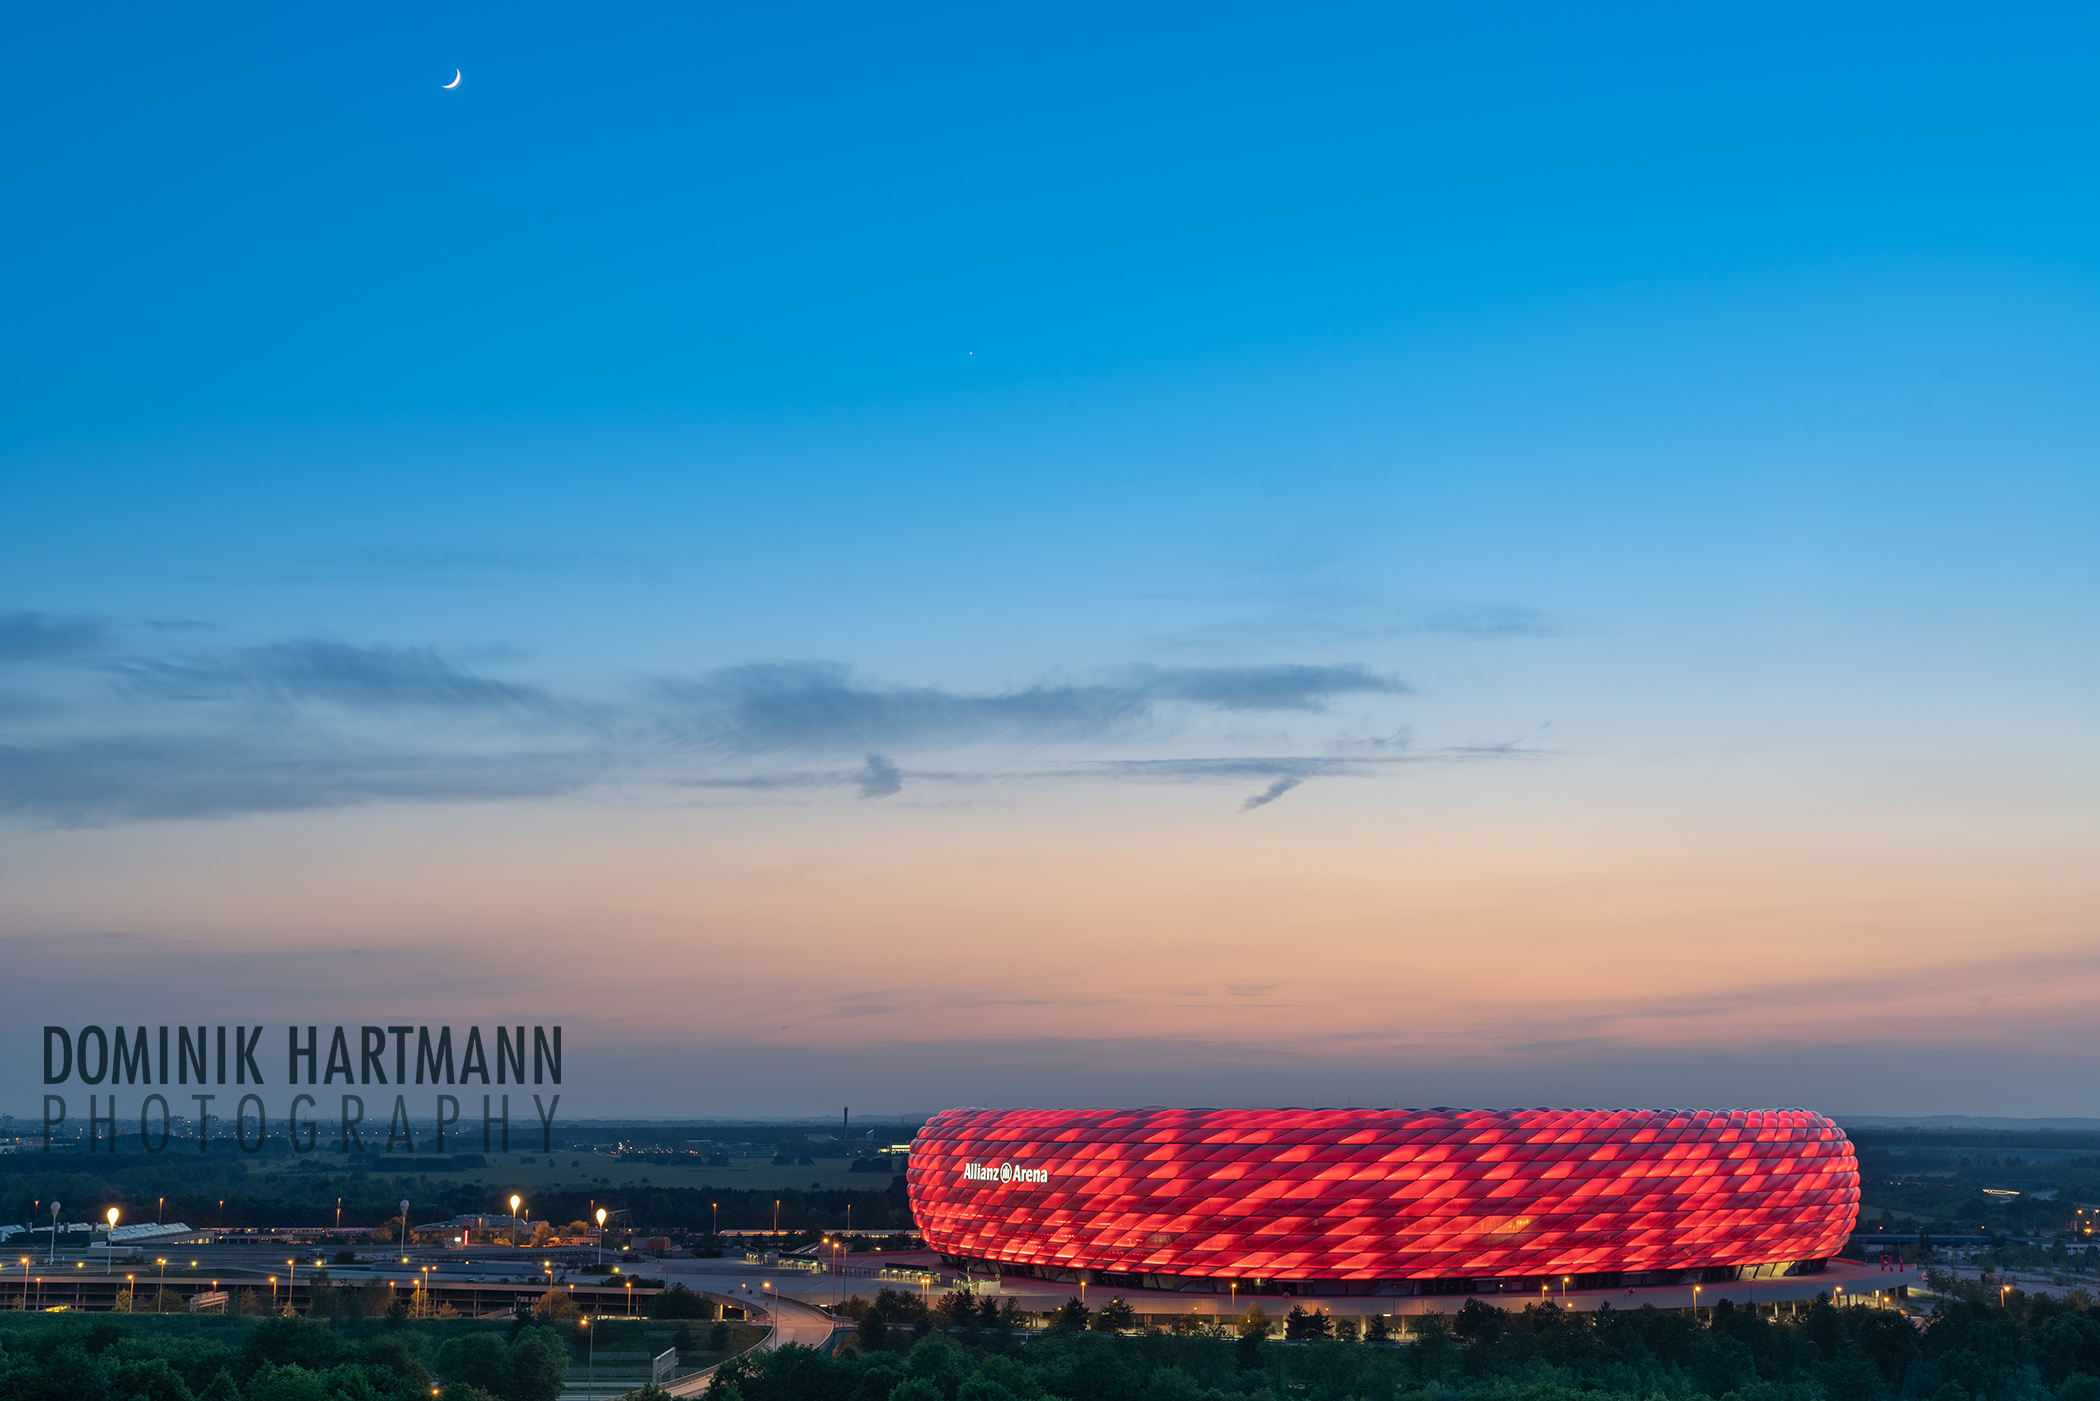 Allianz Arena by Dominik Hartmann